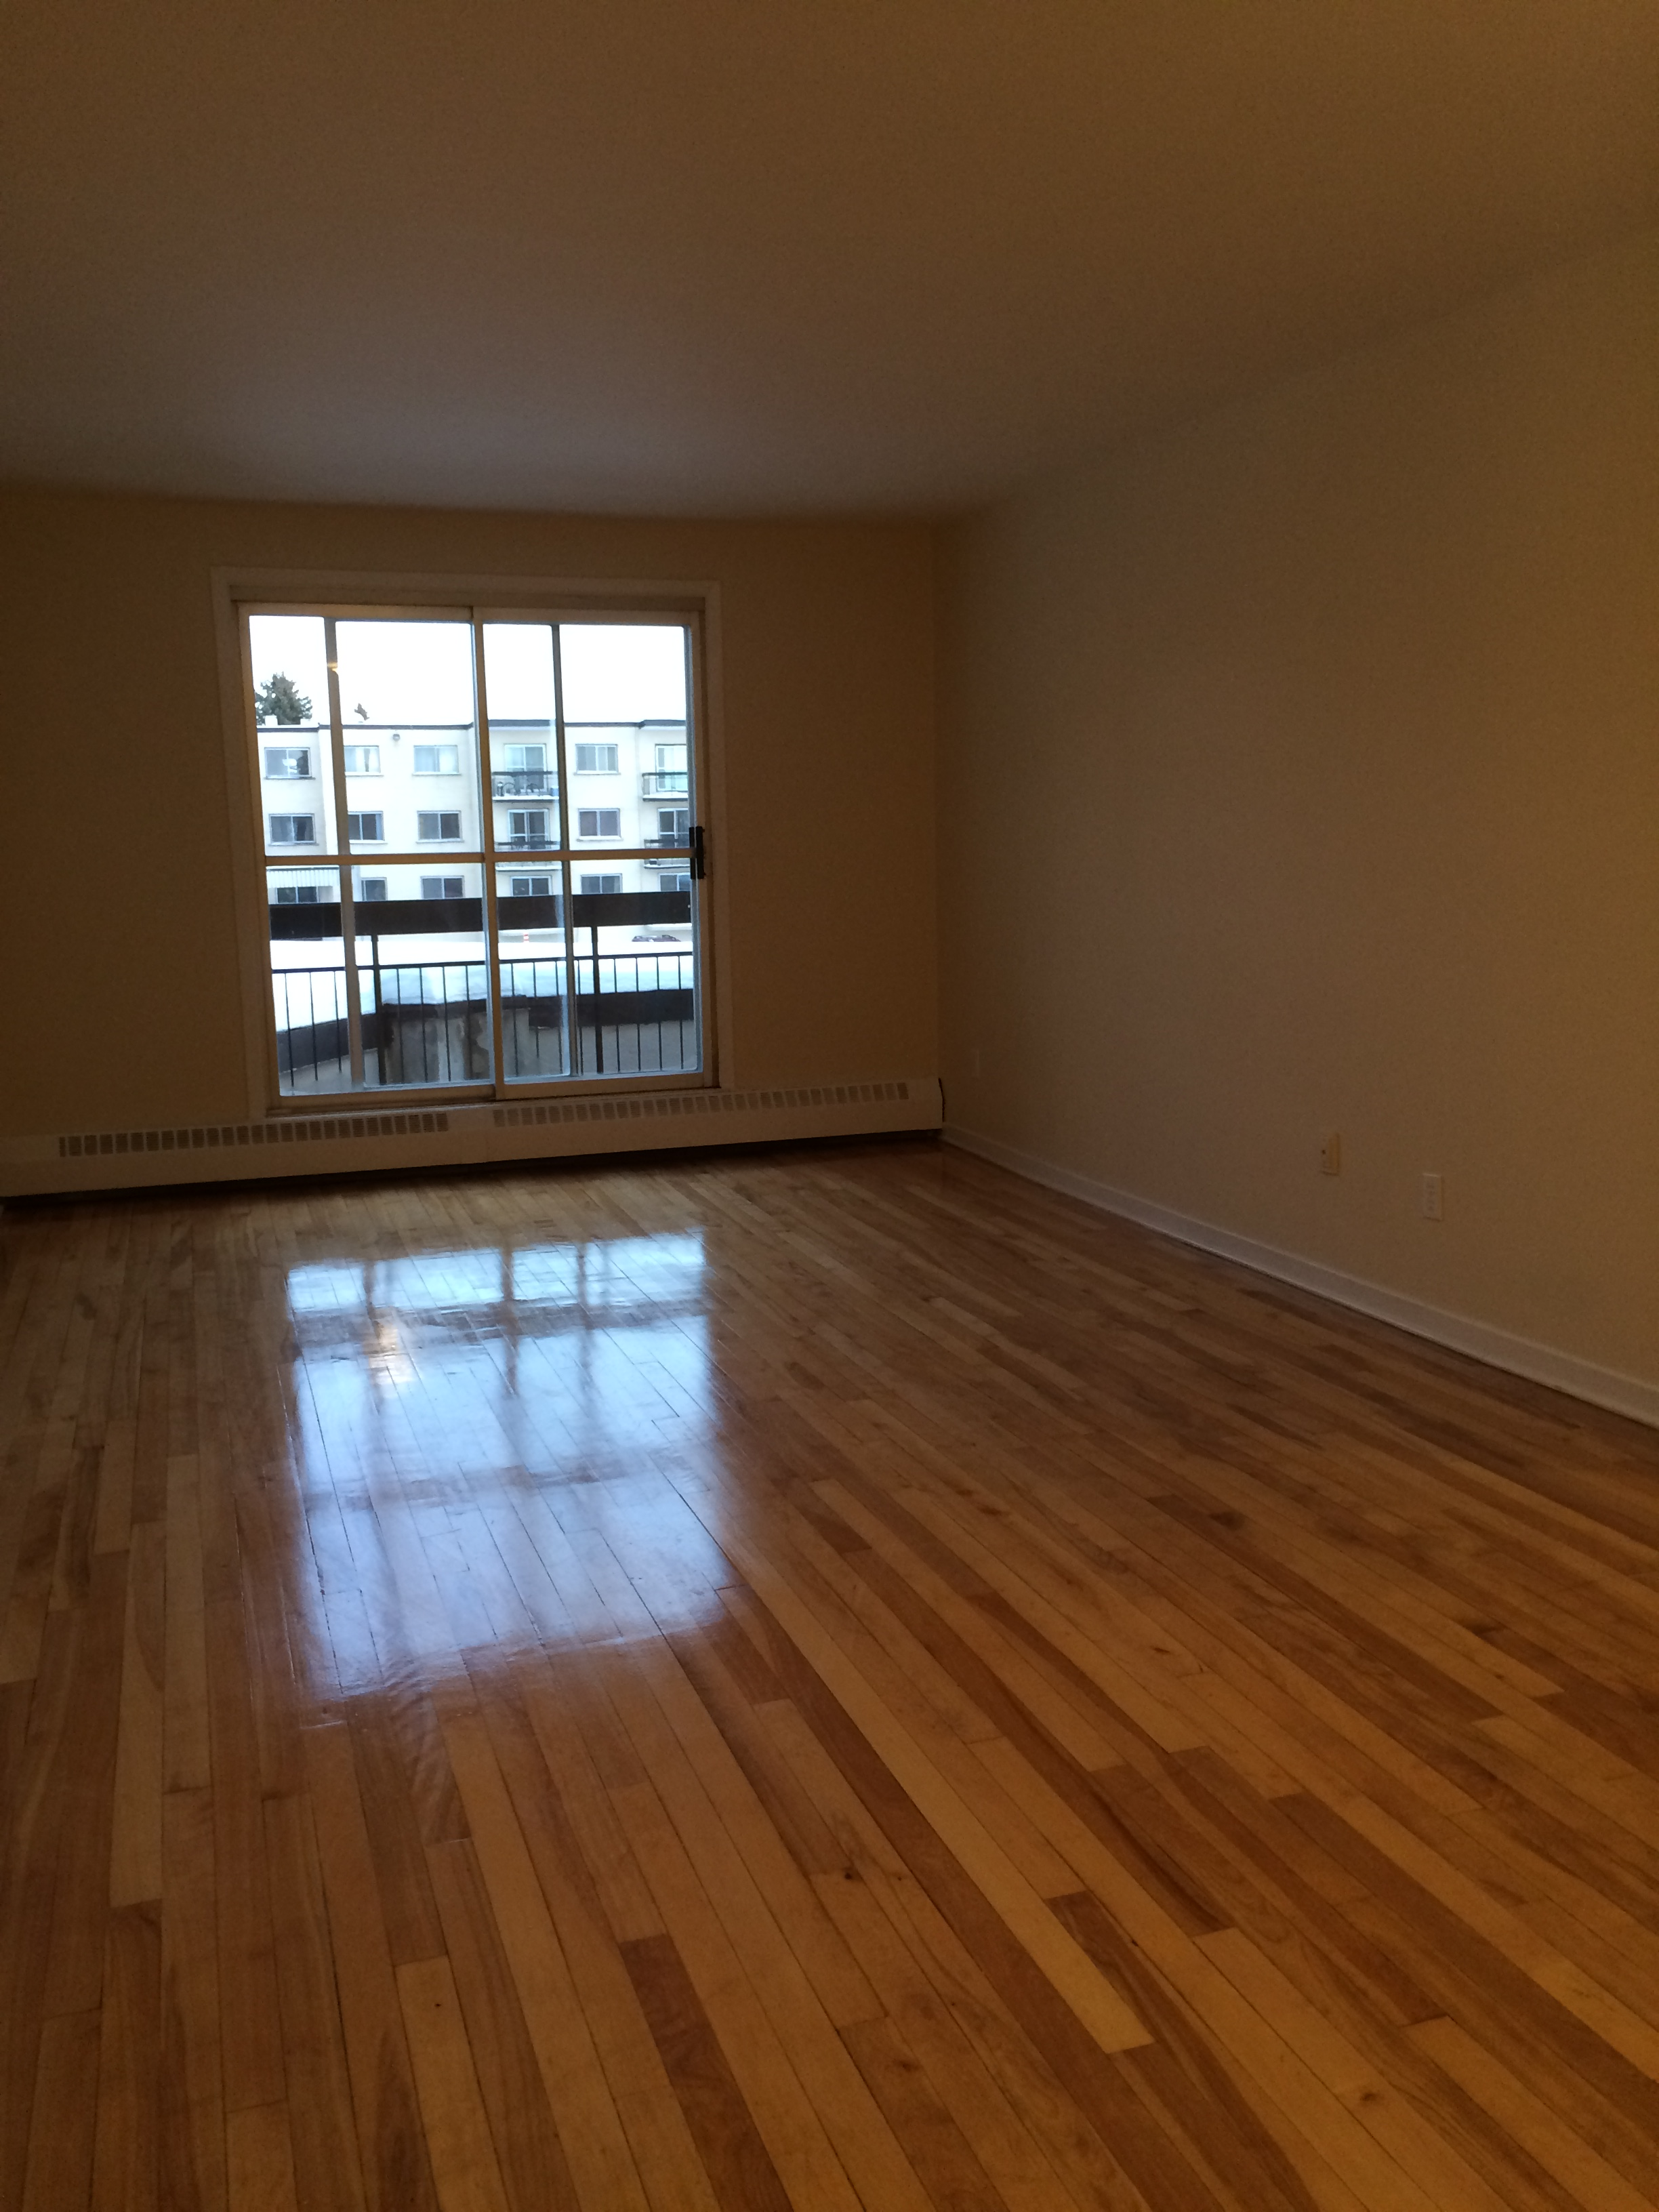 1 bedroom Apartments for rent in Pierrefonds-Roxboro at Place Riviera - Photo 11 - RentQuebecApartments – L35788